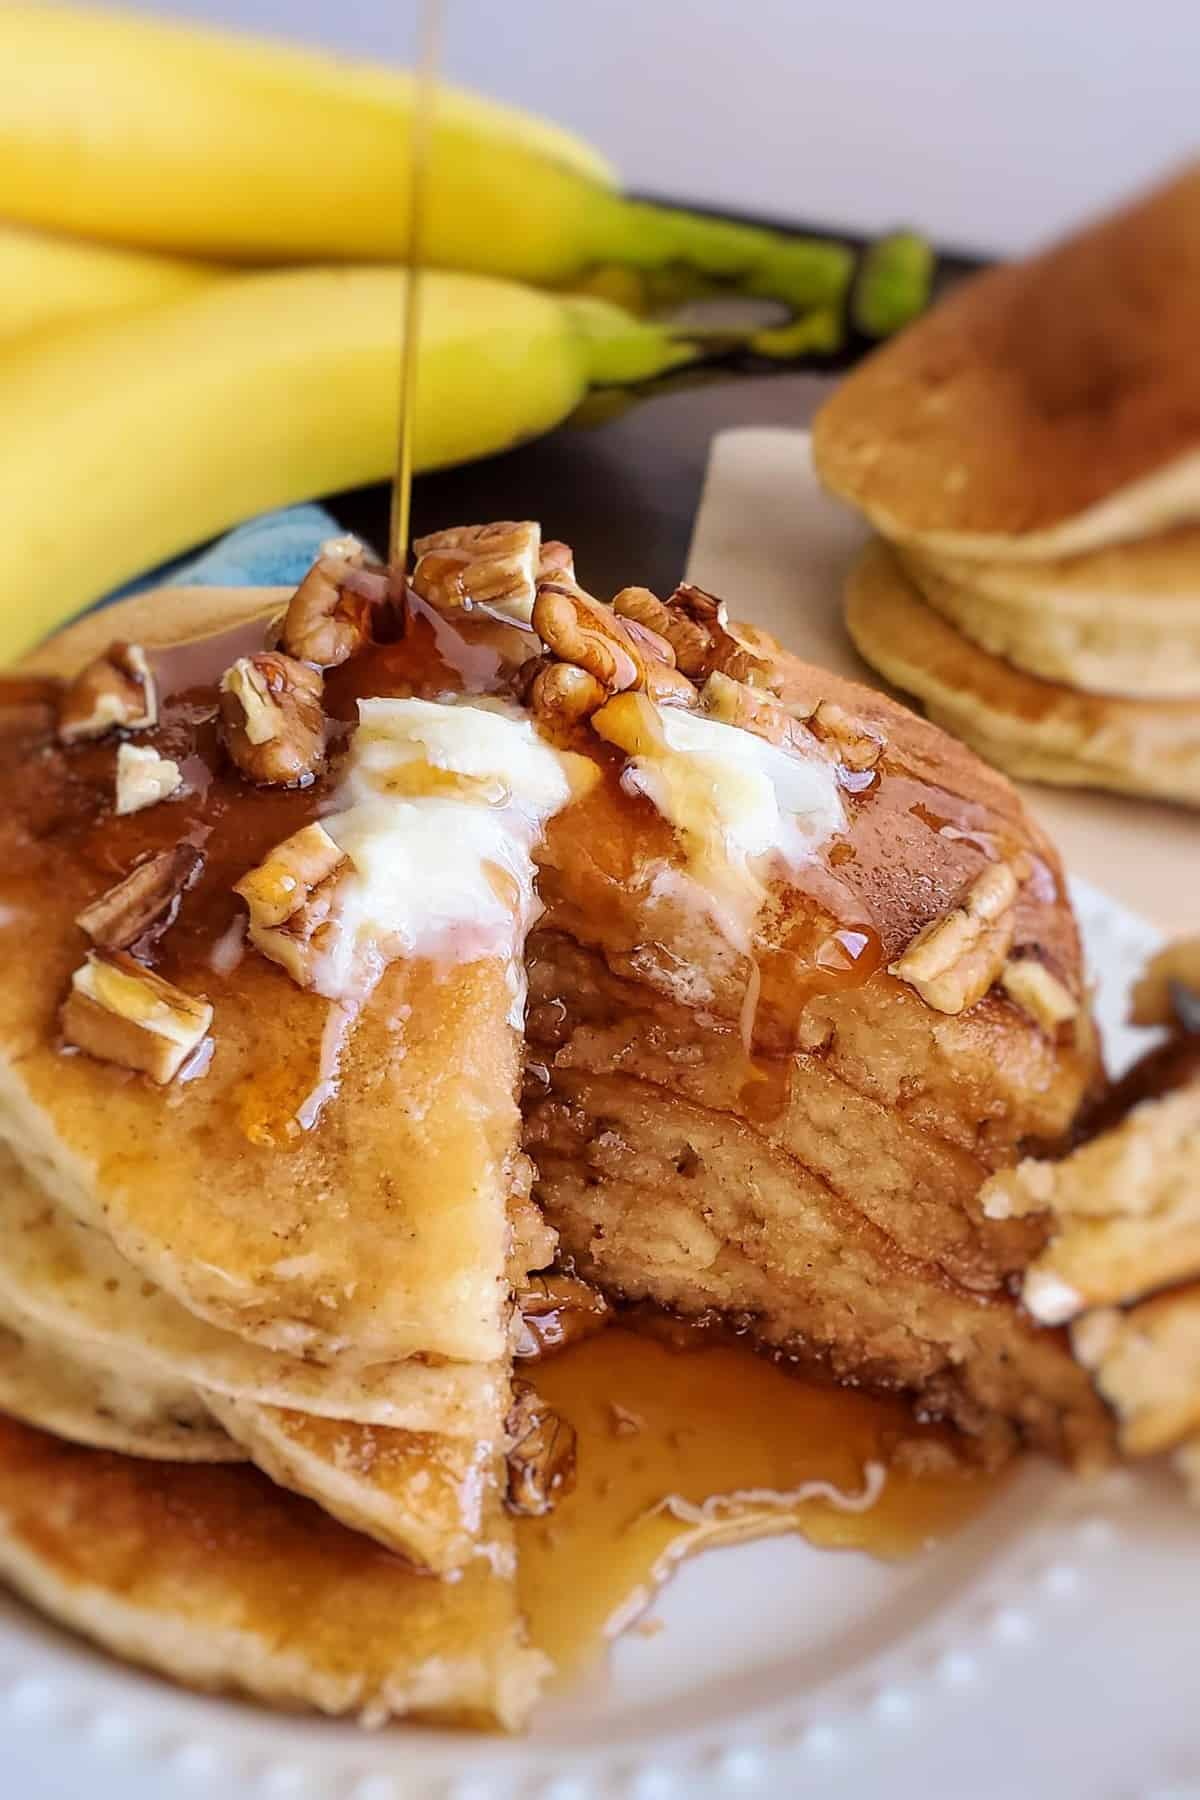 Syrup being poured on a stack of pancakes topped with nuts and butter.